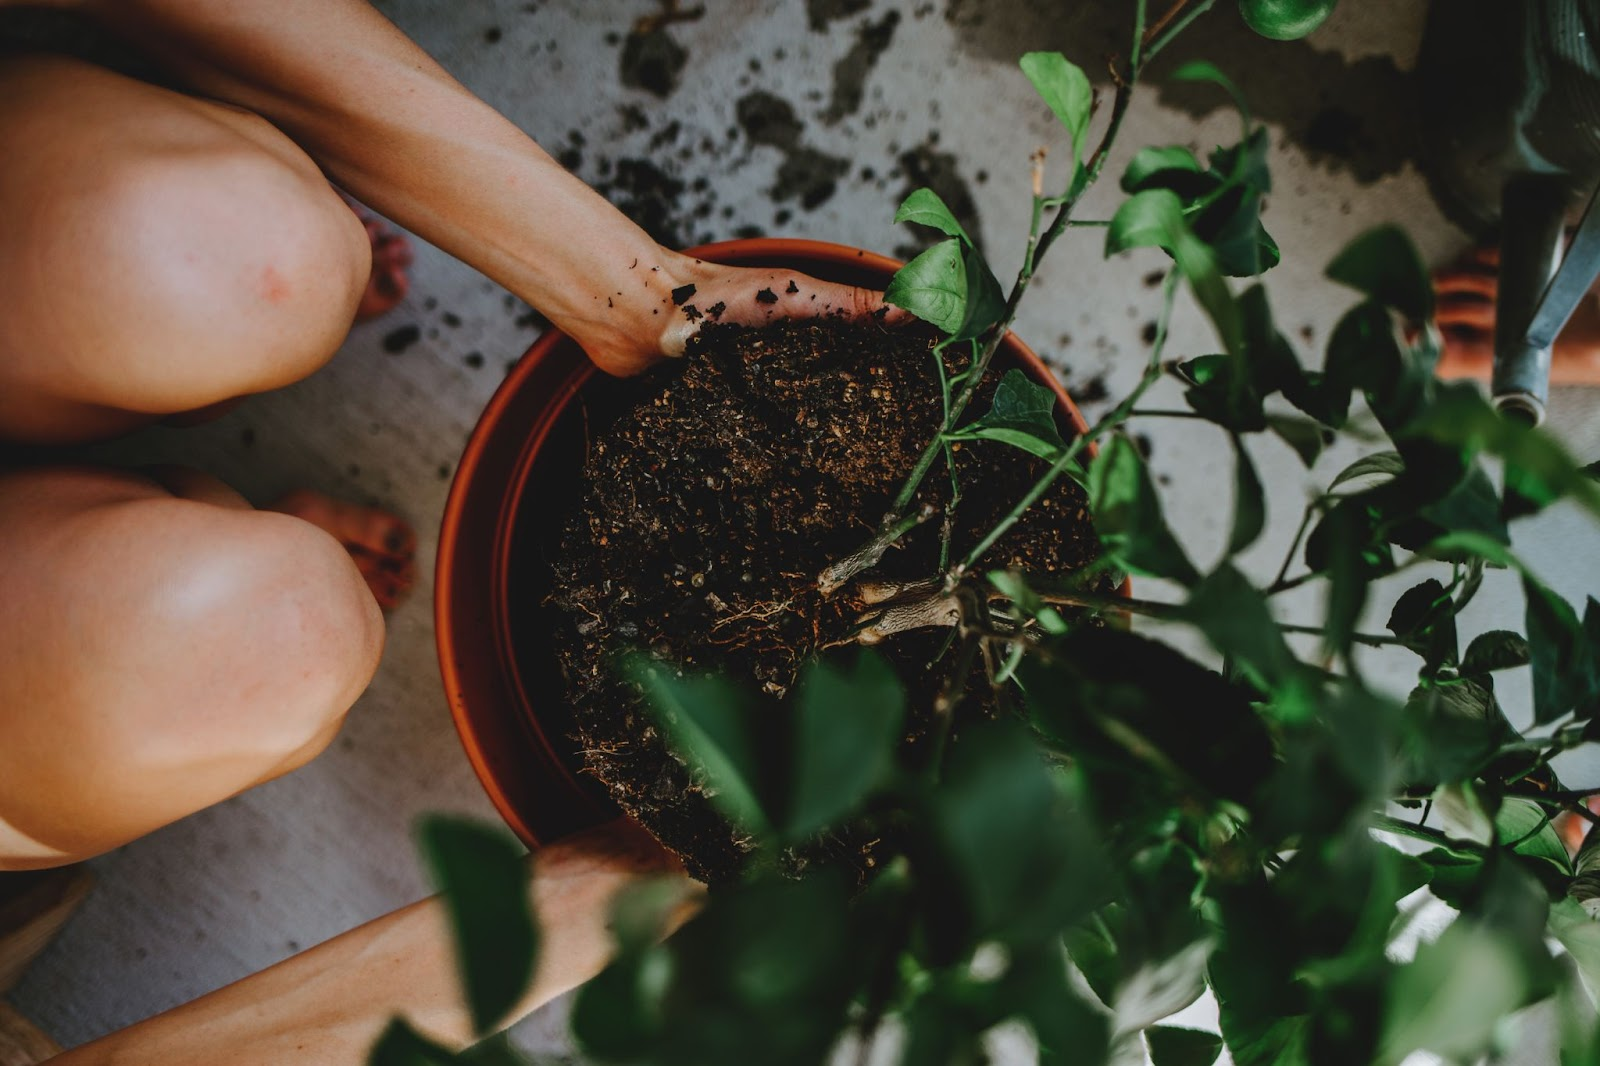 Image of person showing how to repot a plant by putting new plant in pot.